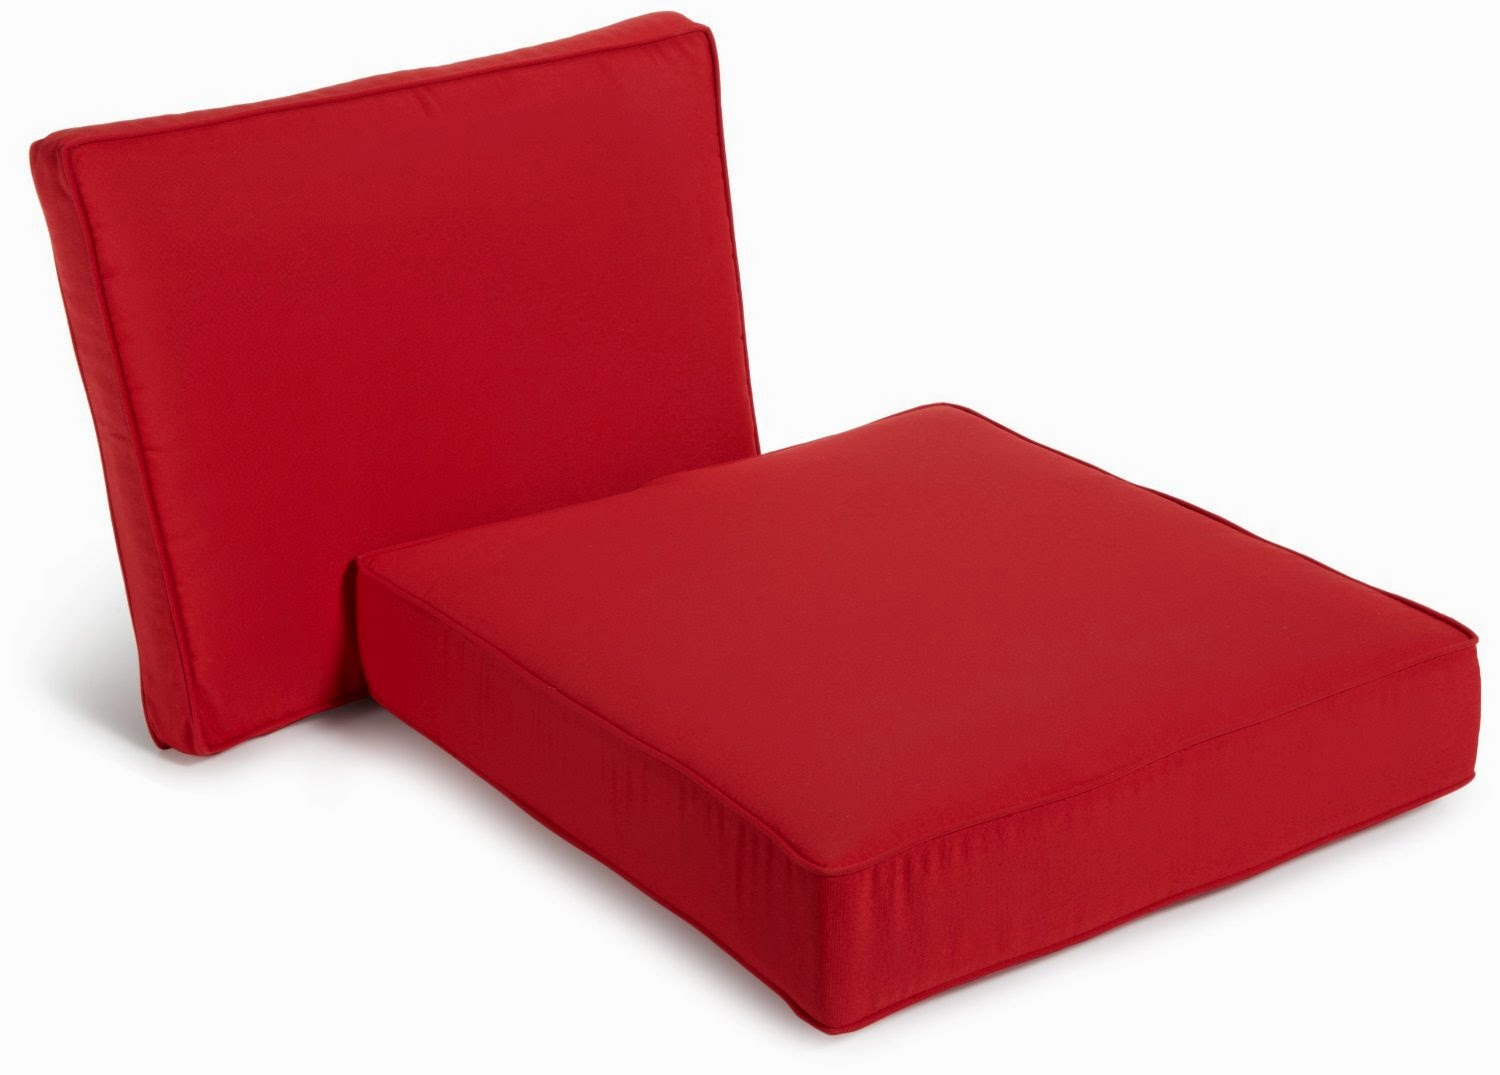 Outdoor Couch Outdoor Couch Cushions